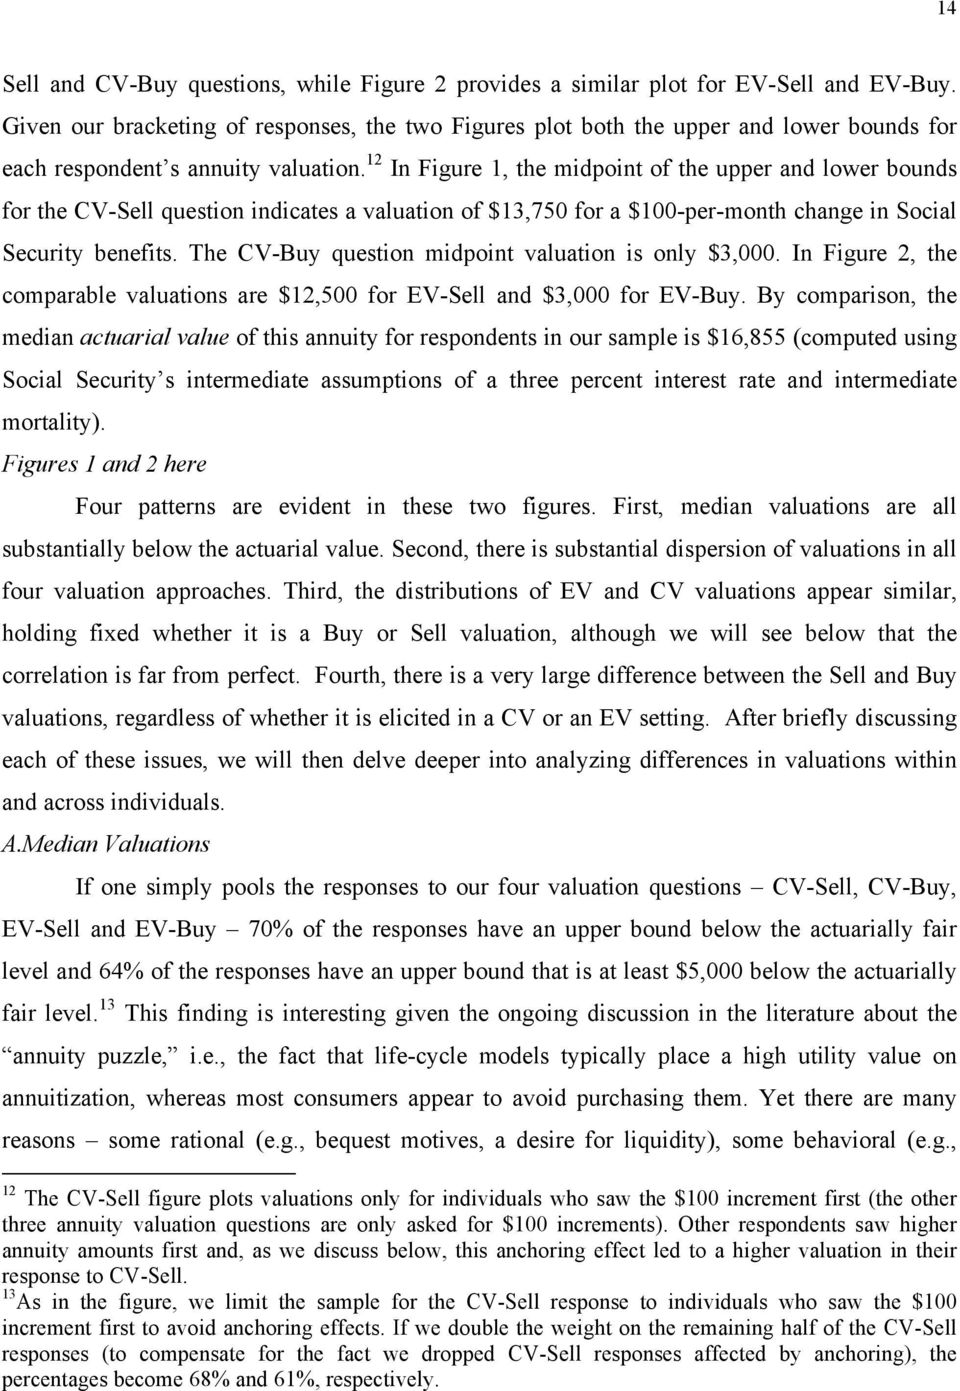 12 In Figure 1, the midpoint of the upper and lower bounds for the CV-Sell question indicates a valuation of $13,750 for a $100-per-month change in Social Security benefits.